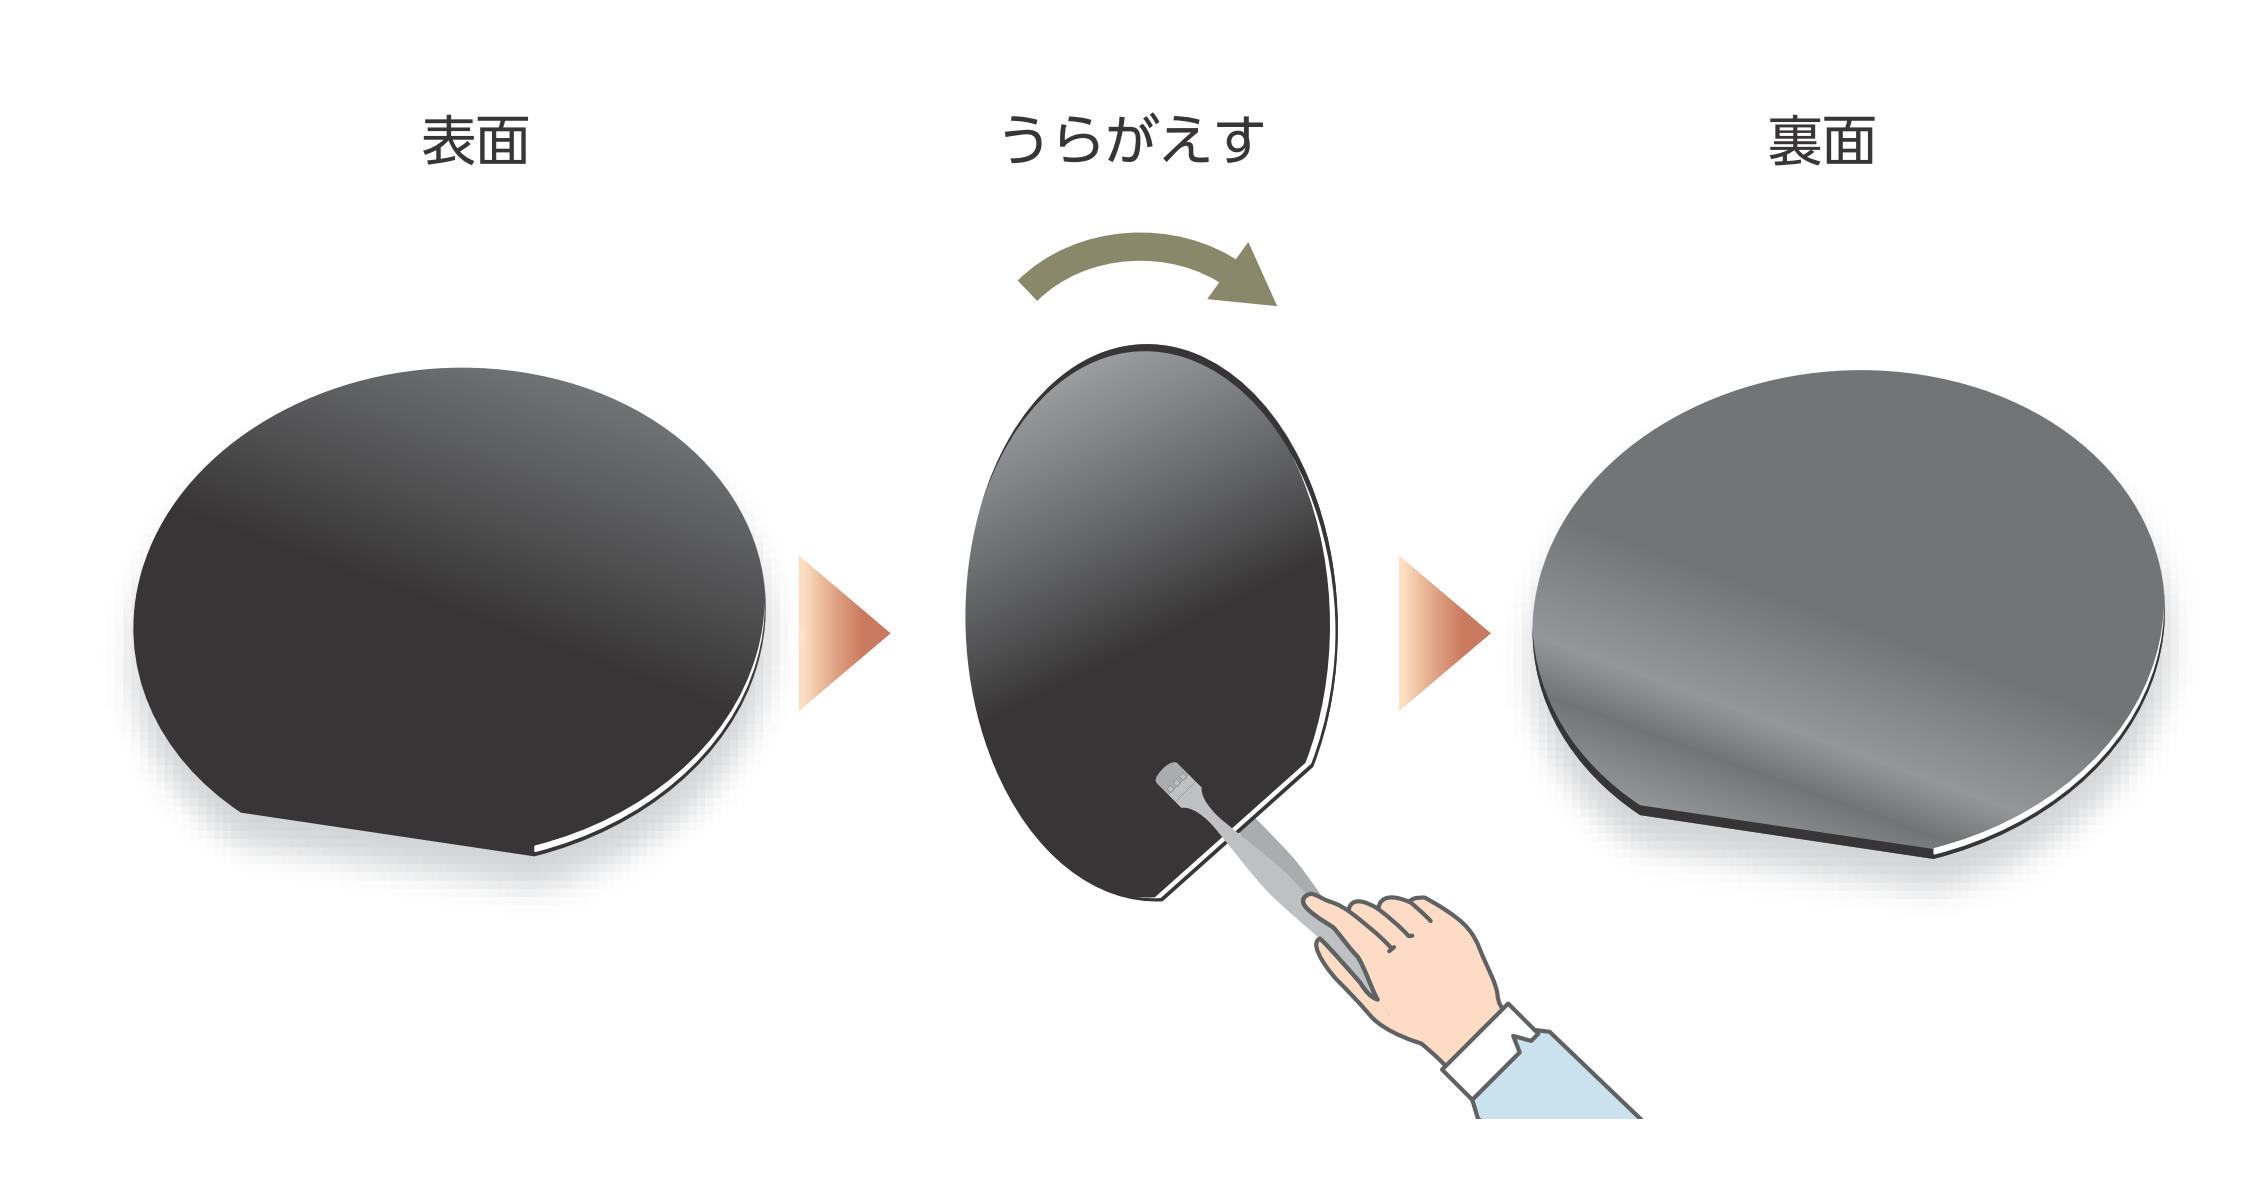 Sample Wafer Inversion Method